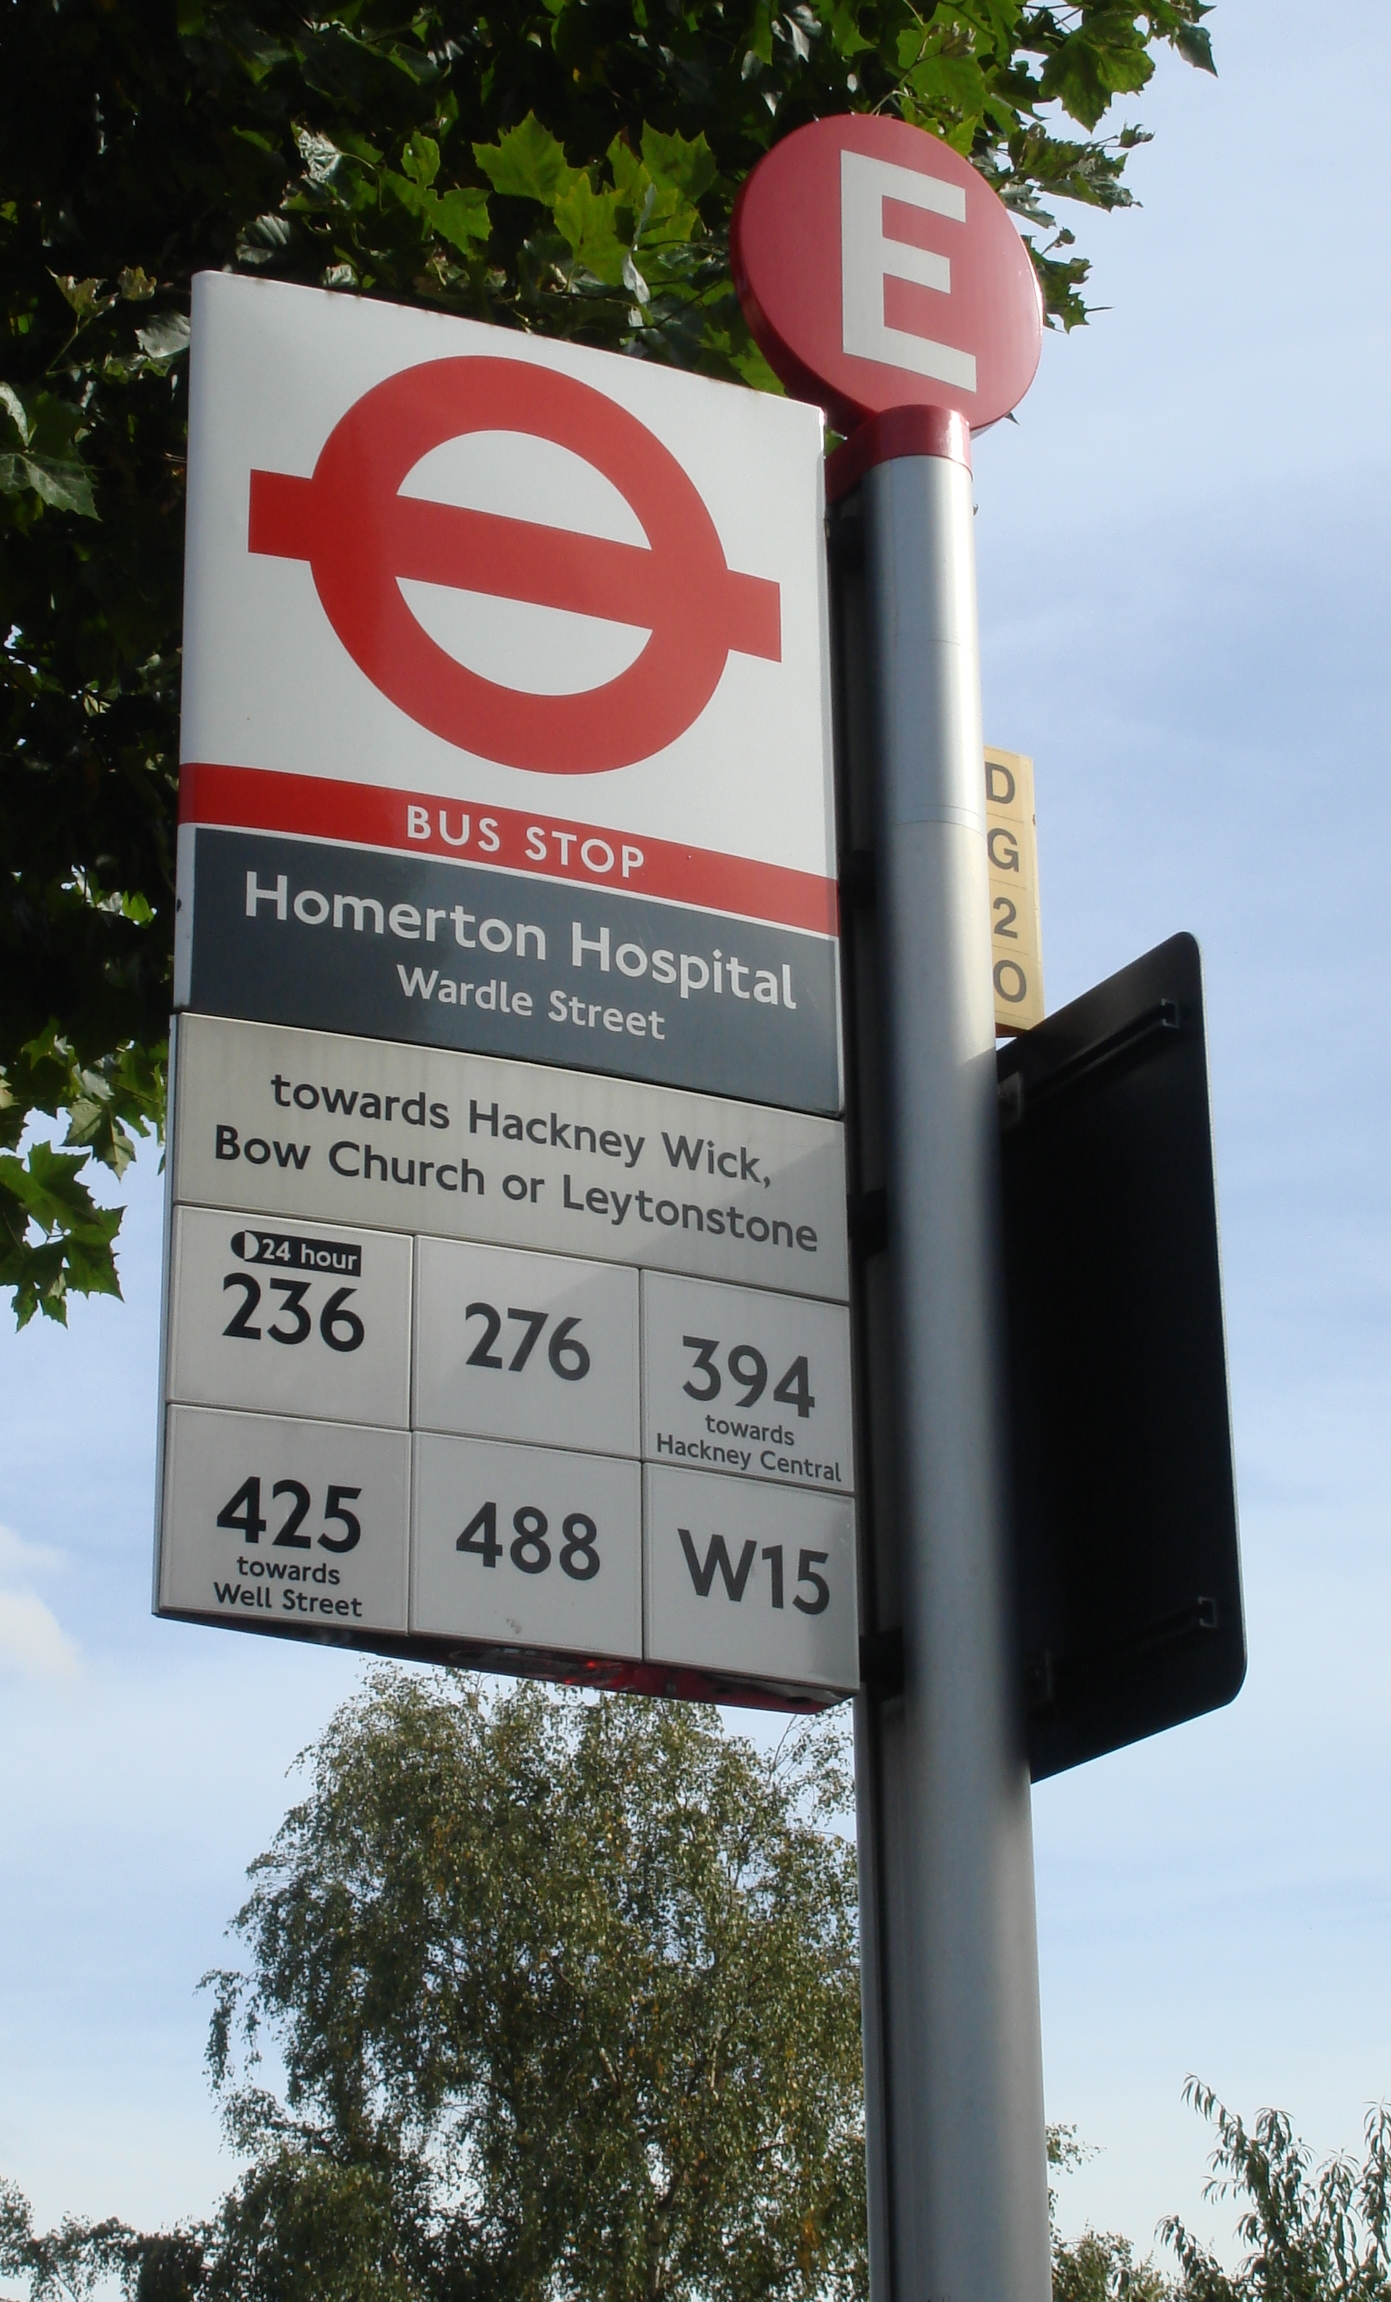 Overground train times from homerton sexual health